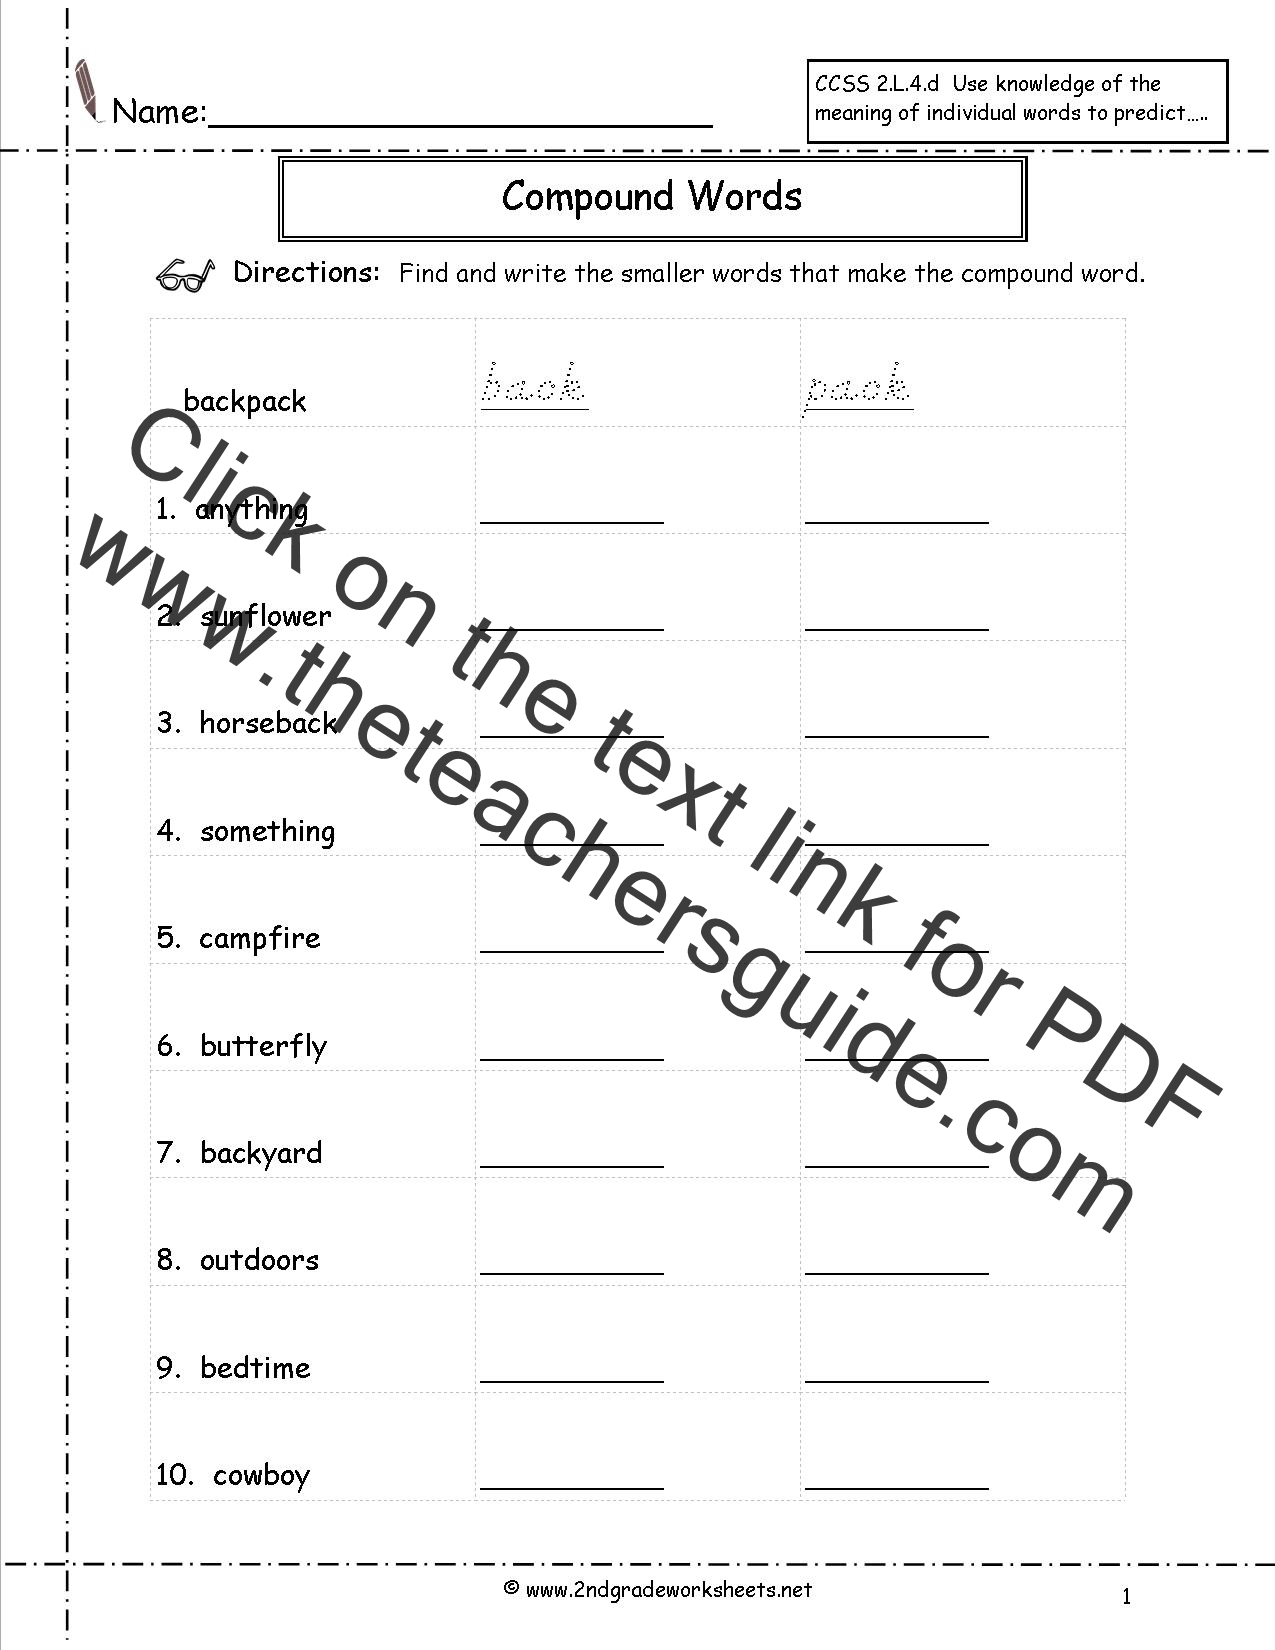 Worksheets Second Grade Worksheets Free free languagegrammar worksheets and printouts compound words worksheets